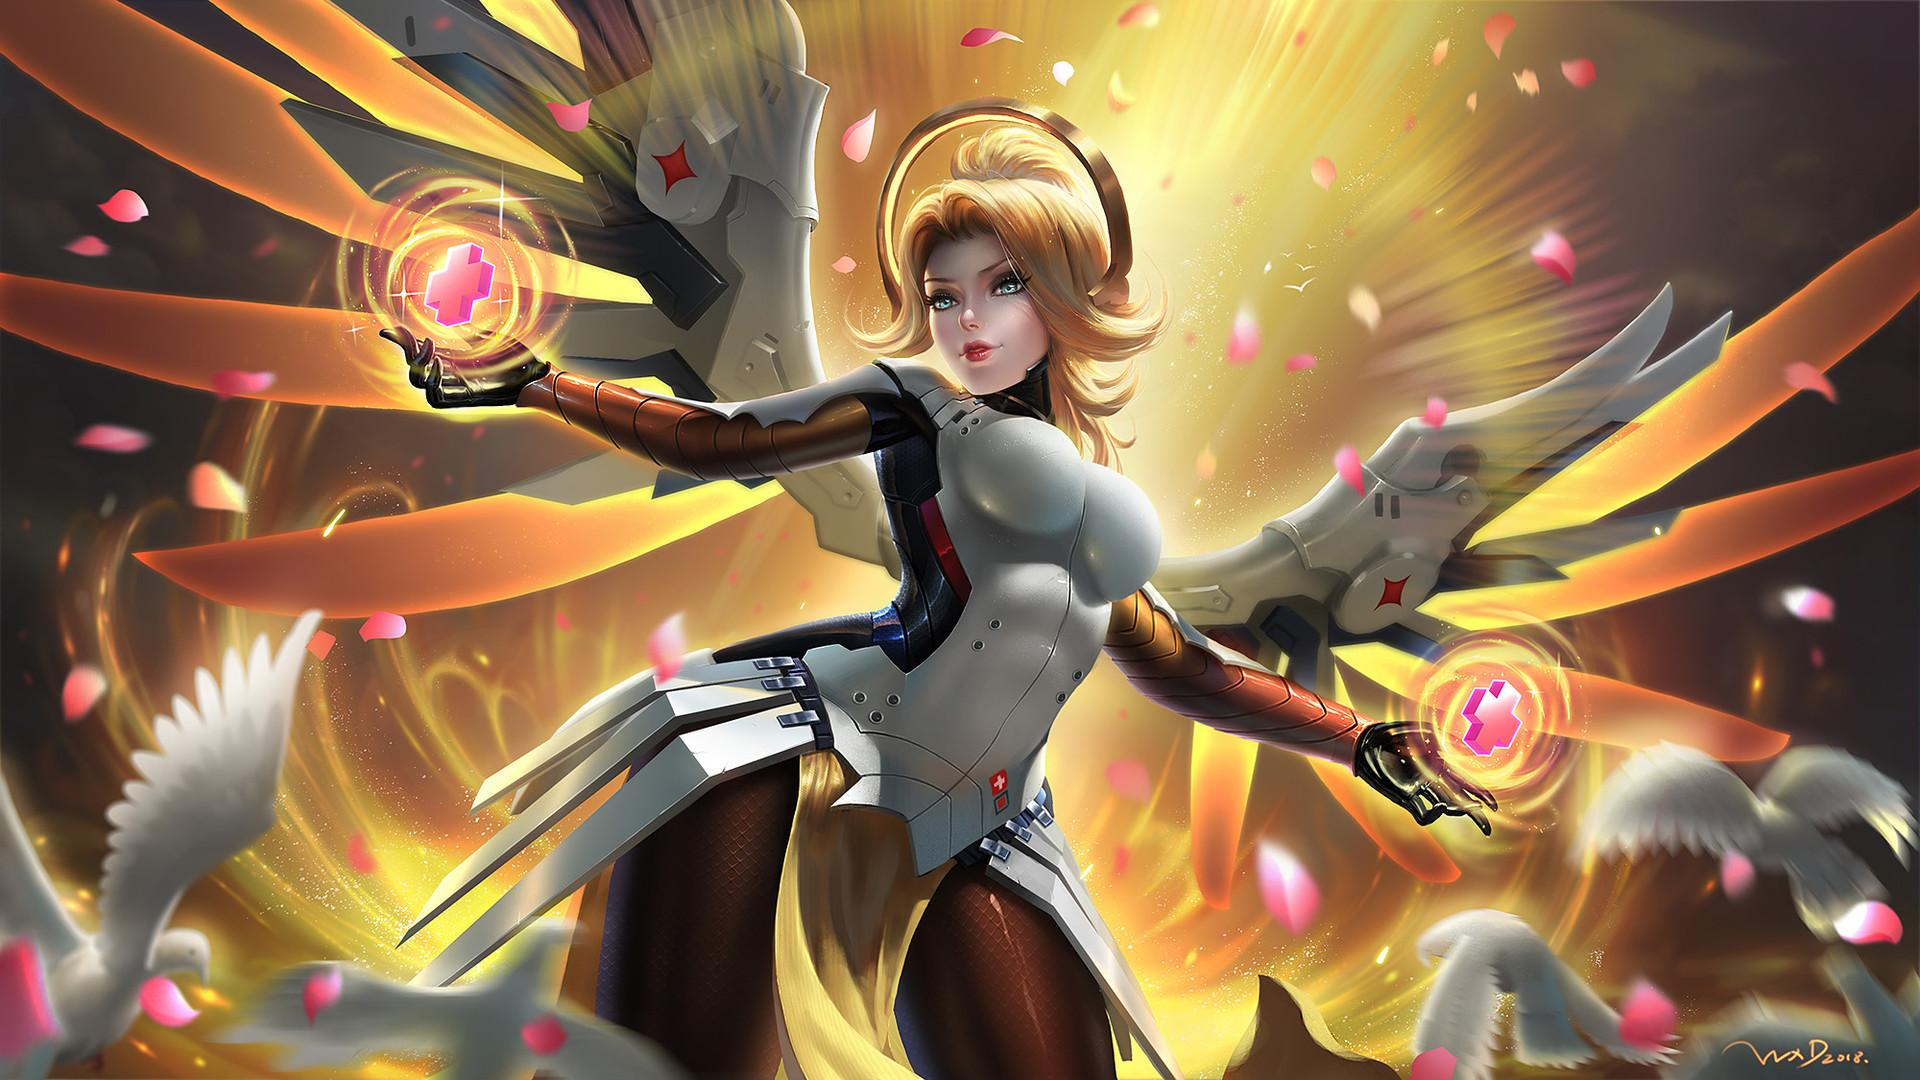 Overwatch Mercy Wallpapers Wallpaper Cave